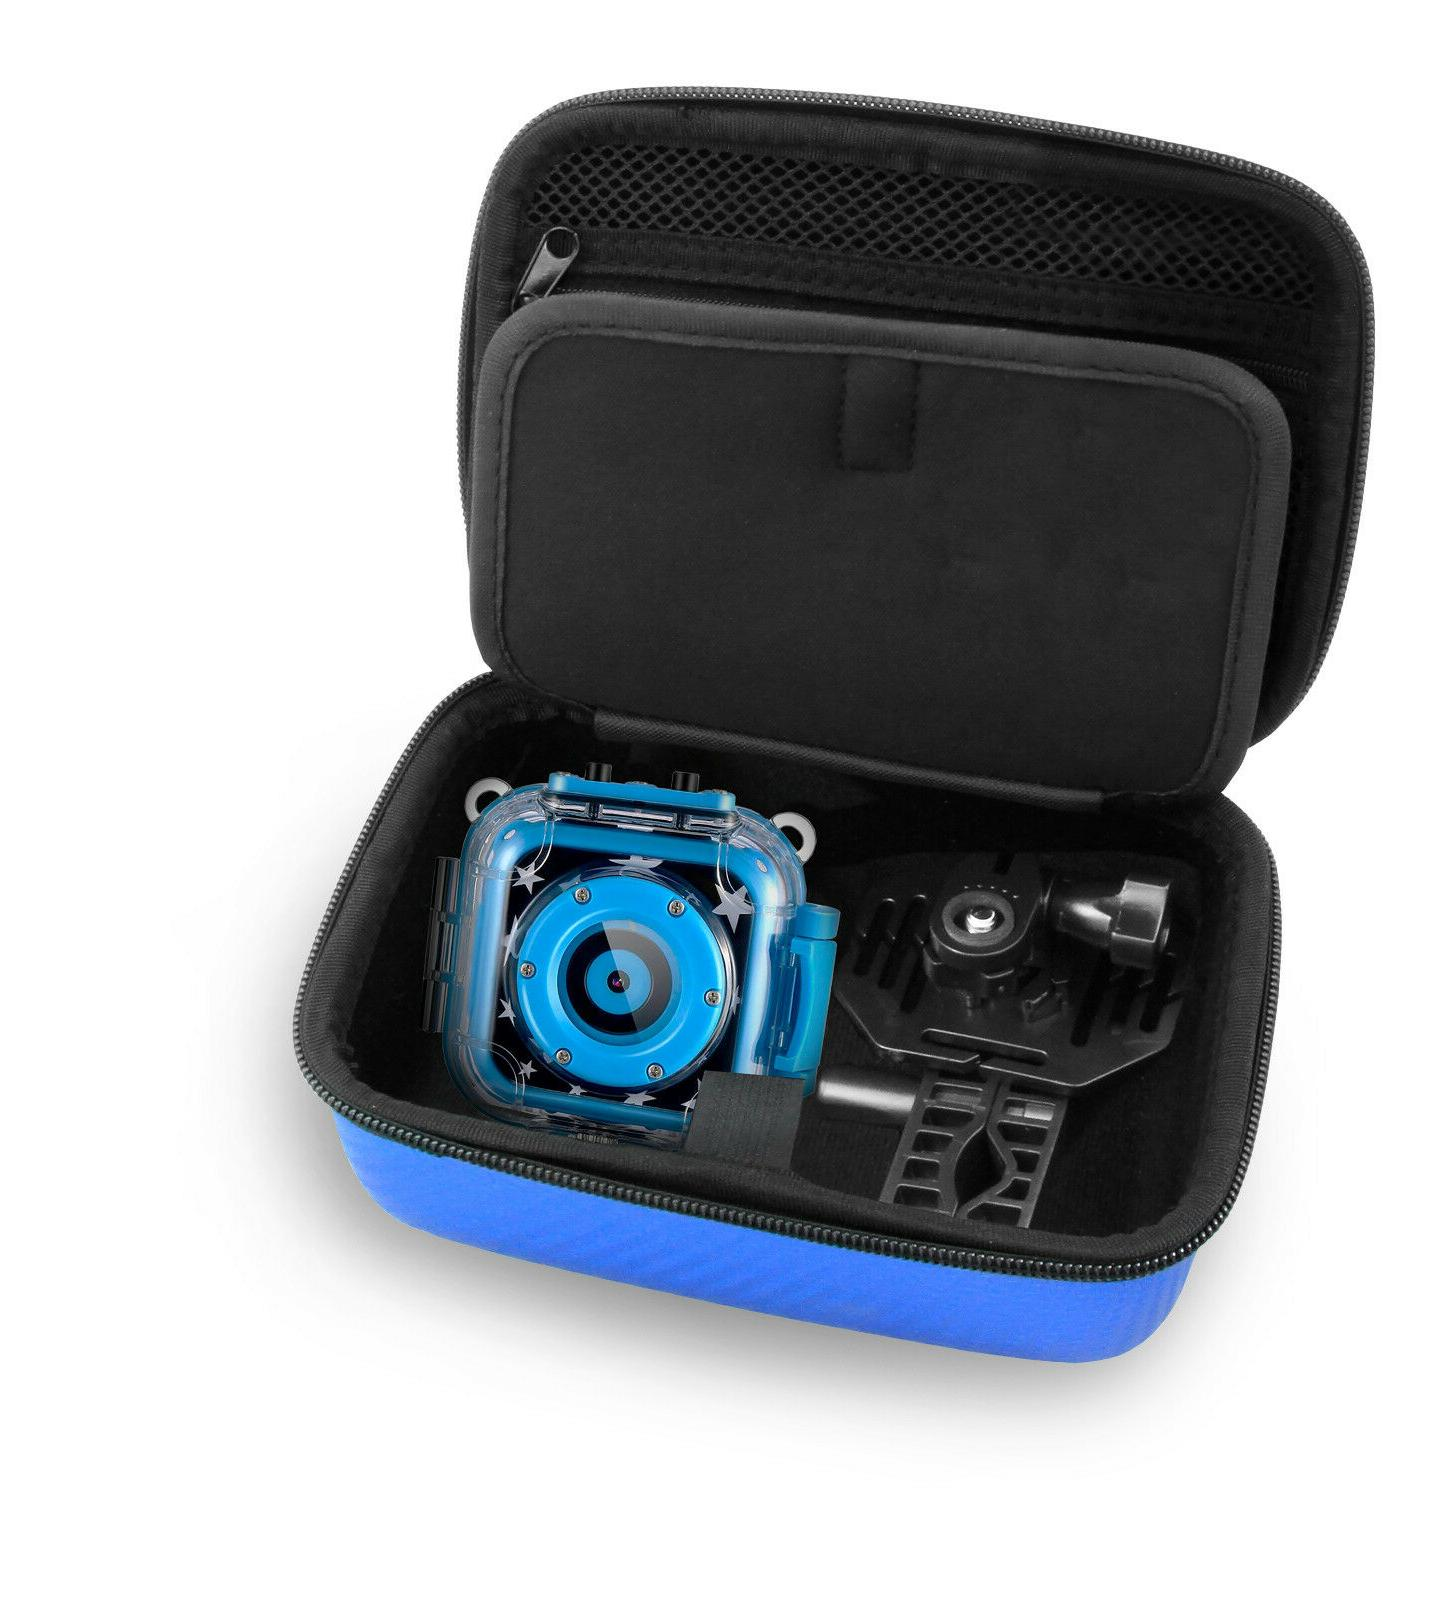 blue kidcase fits ourlife kids camera